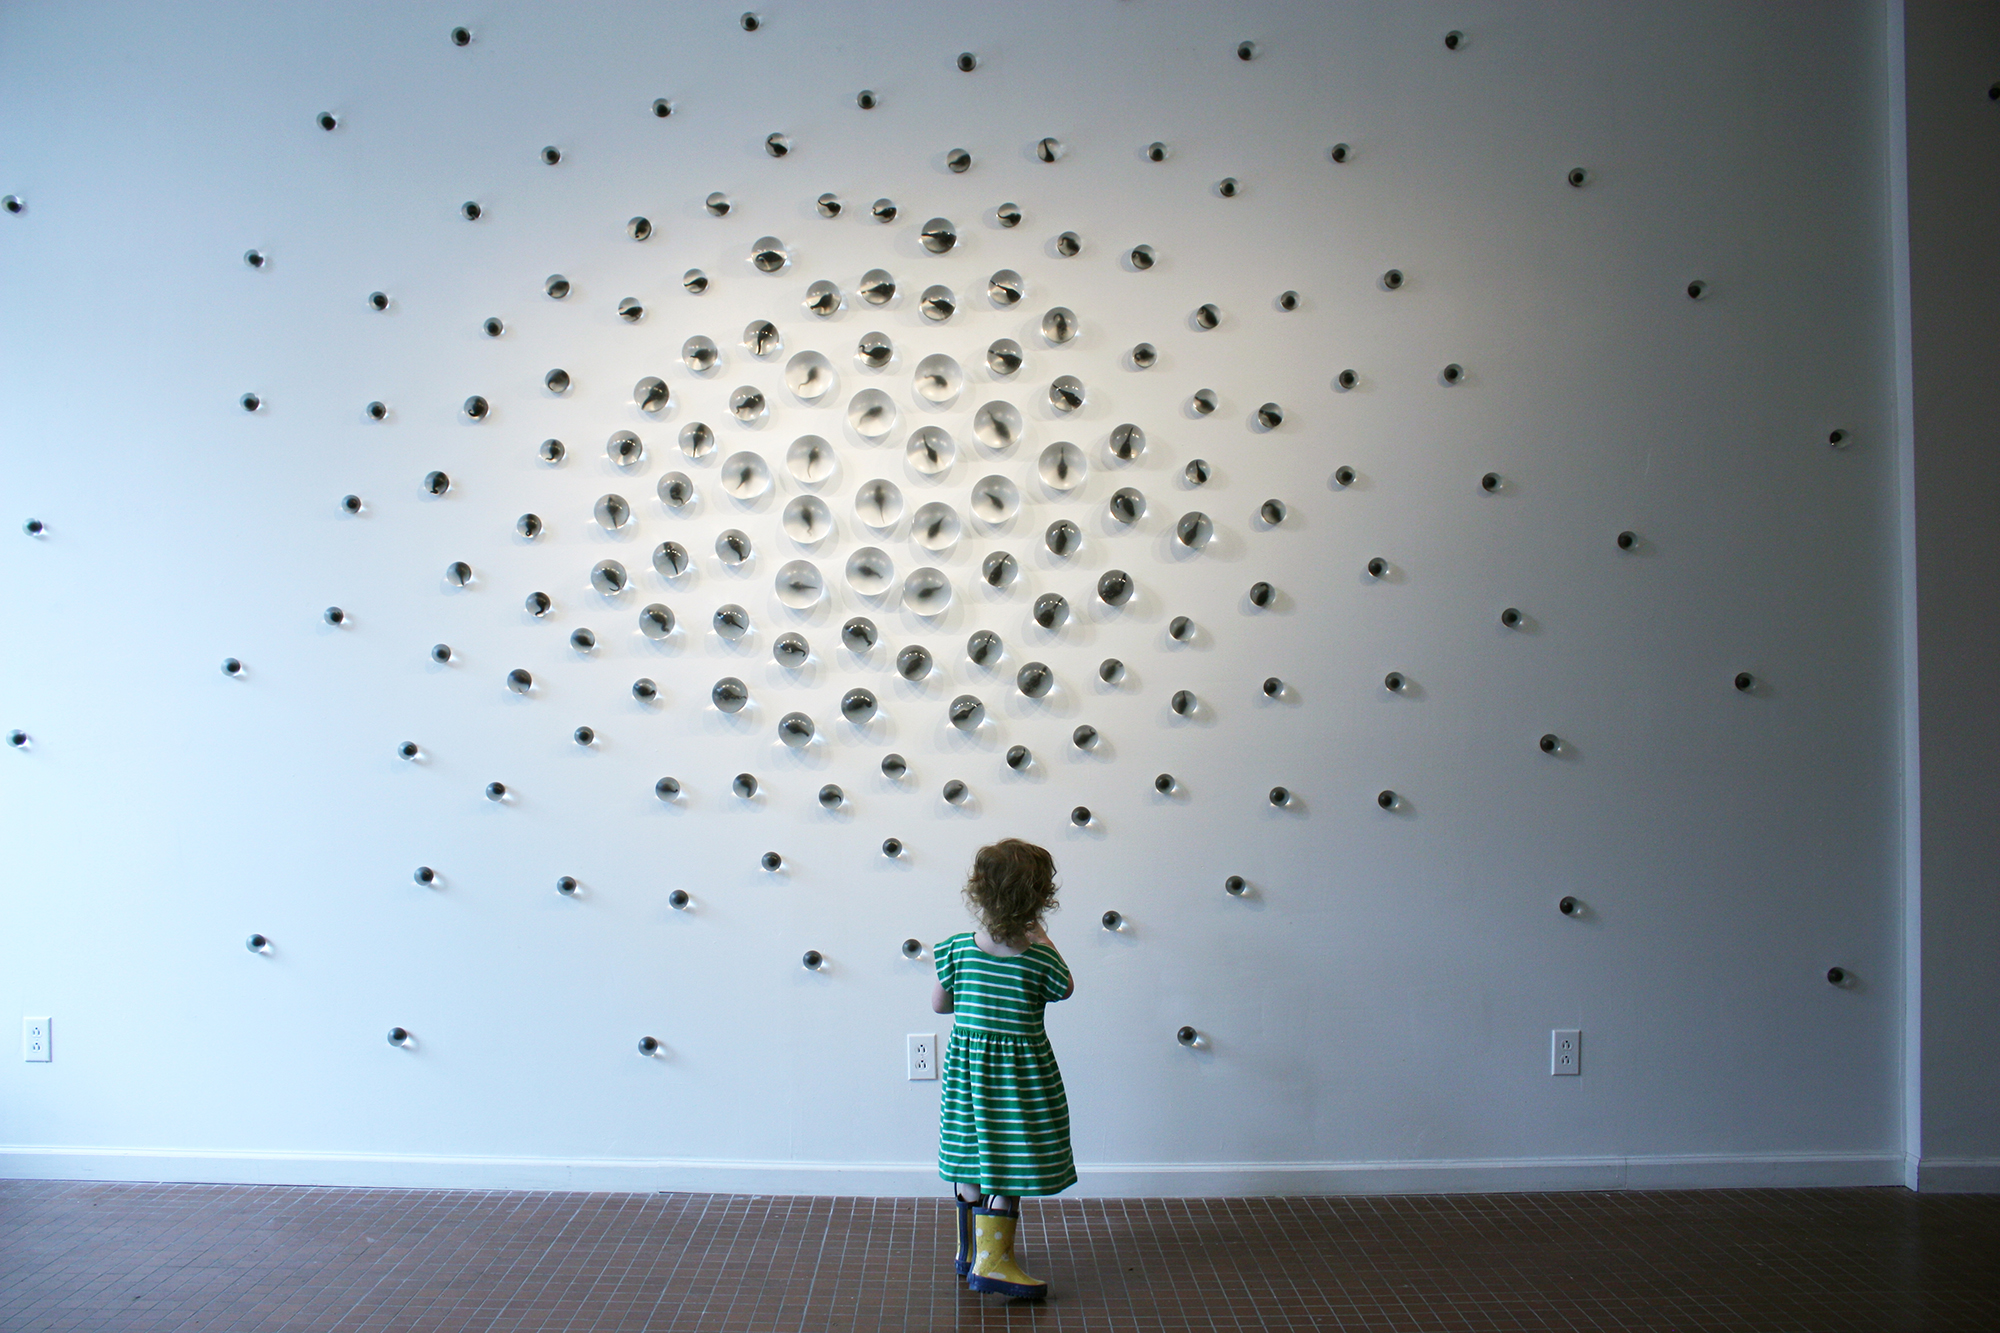 Toddler stands in front of a large art piece on a wall